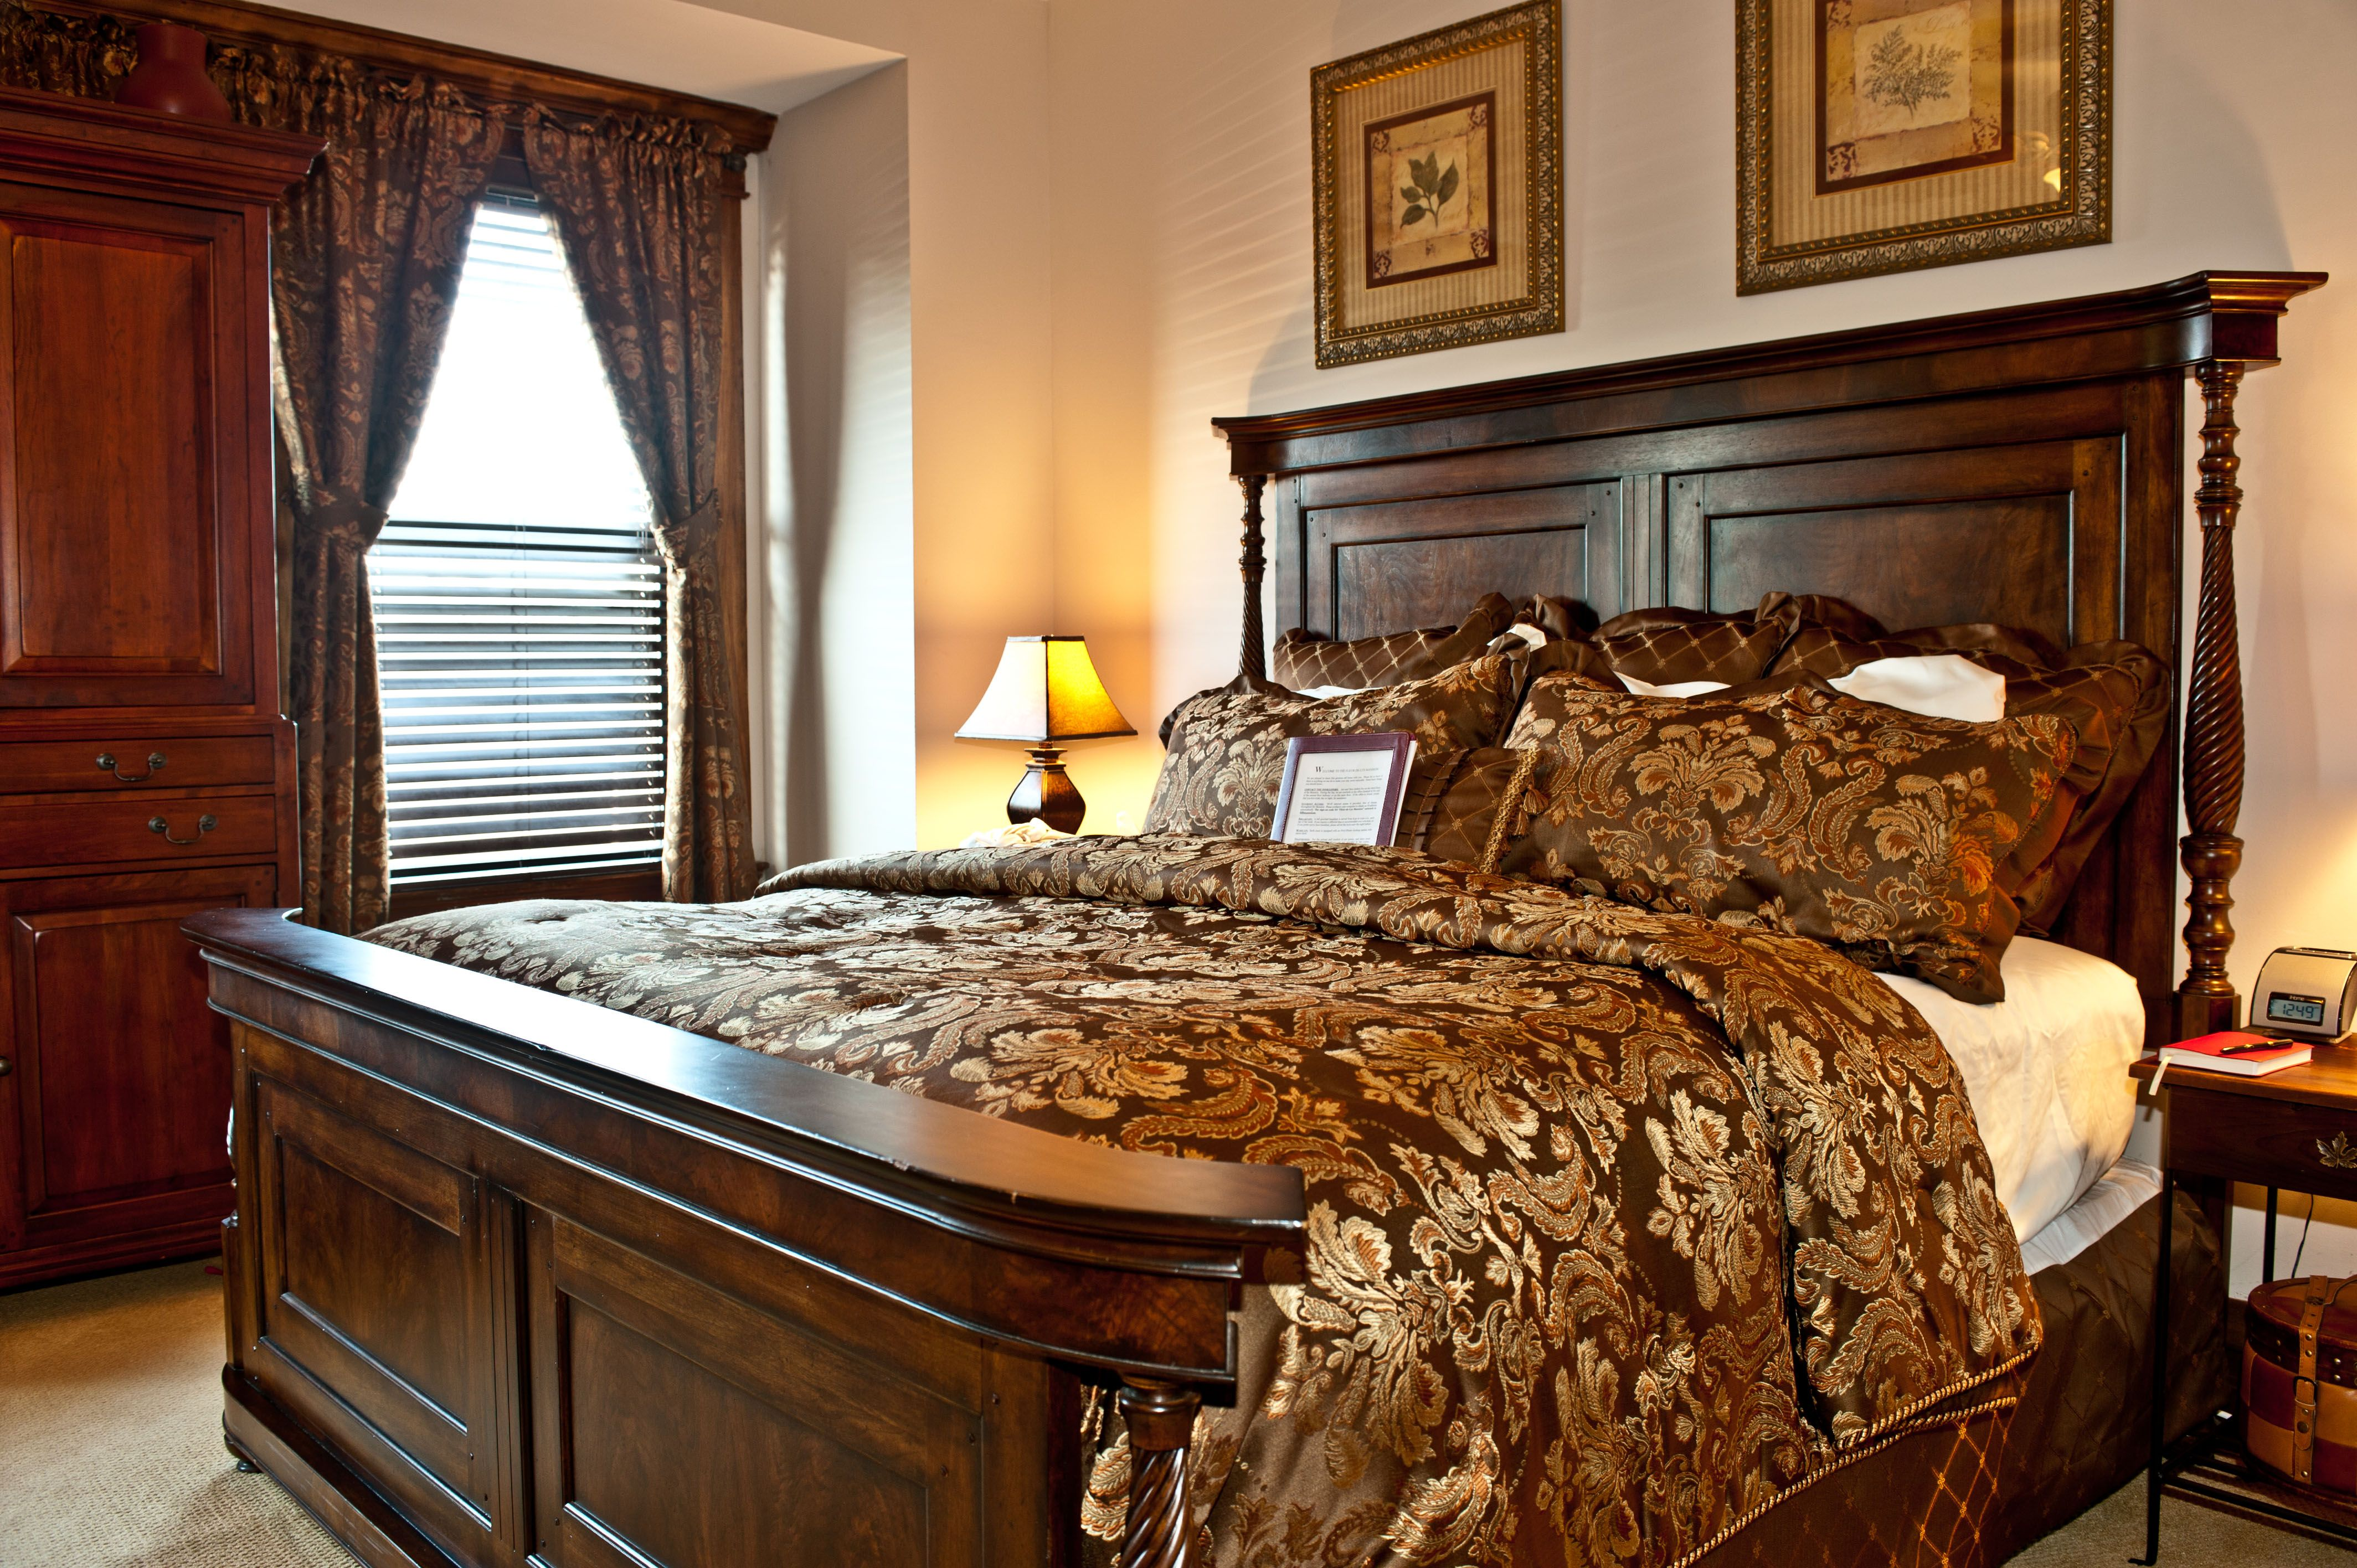 Forest Park Room Mansions luxury, Home decor